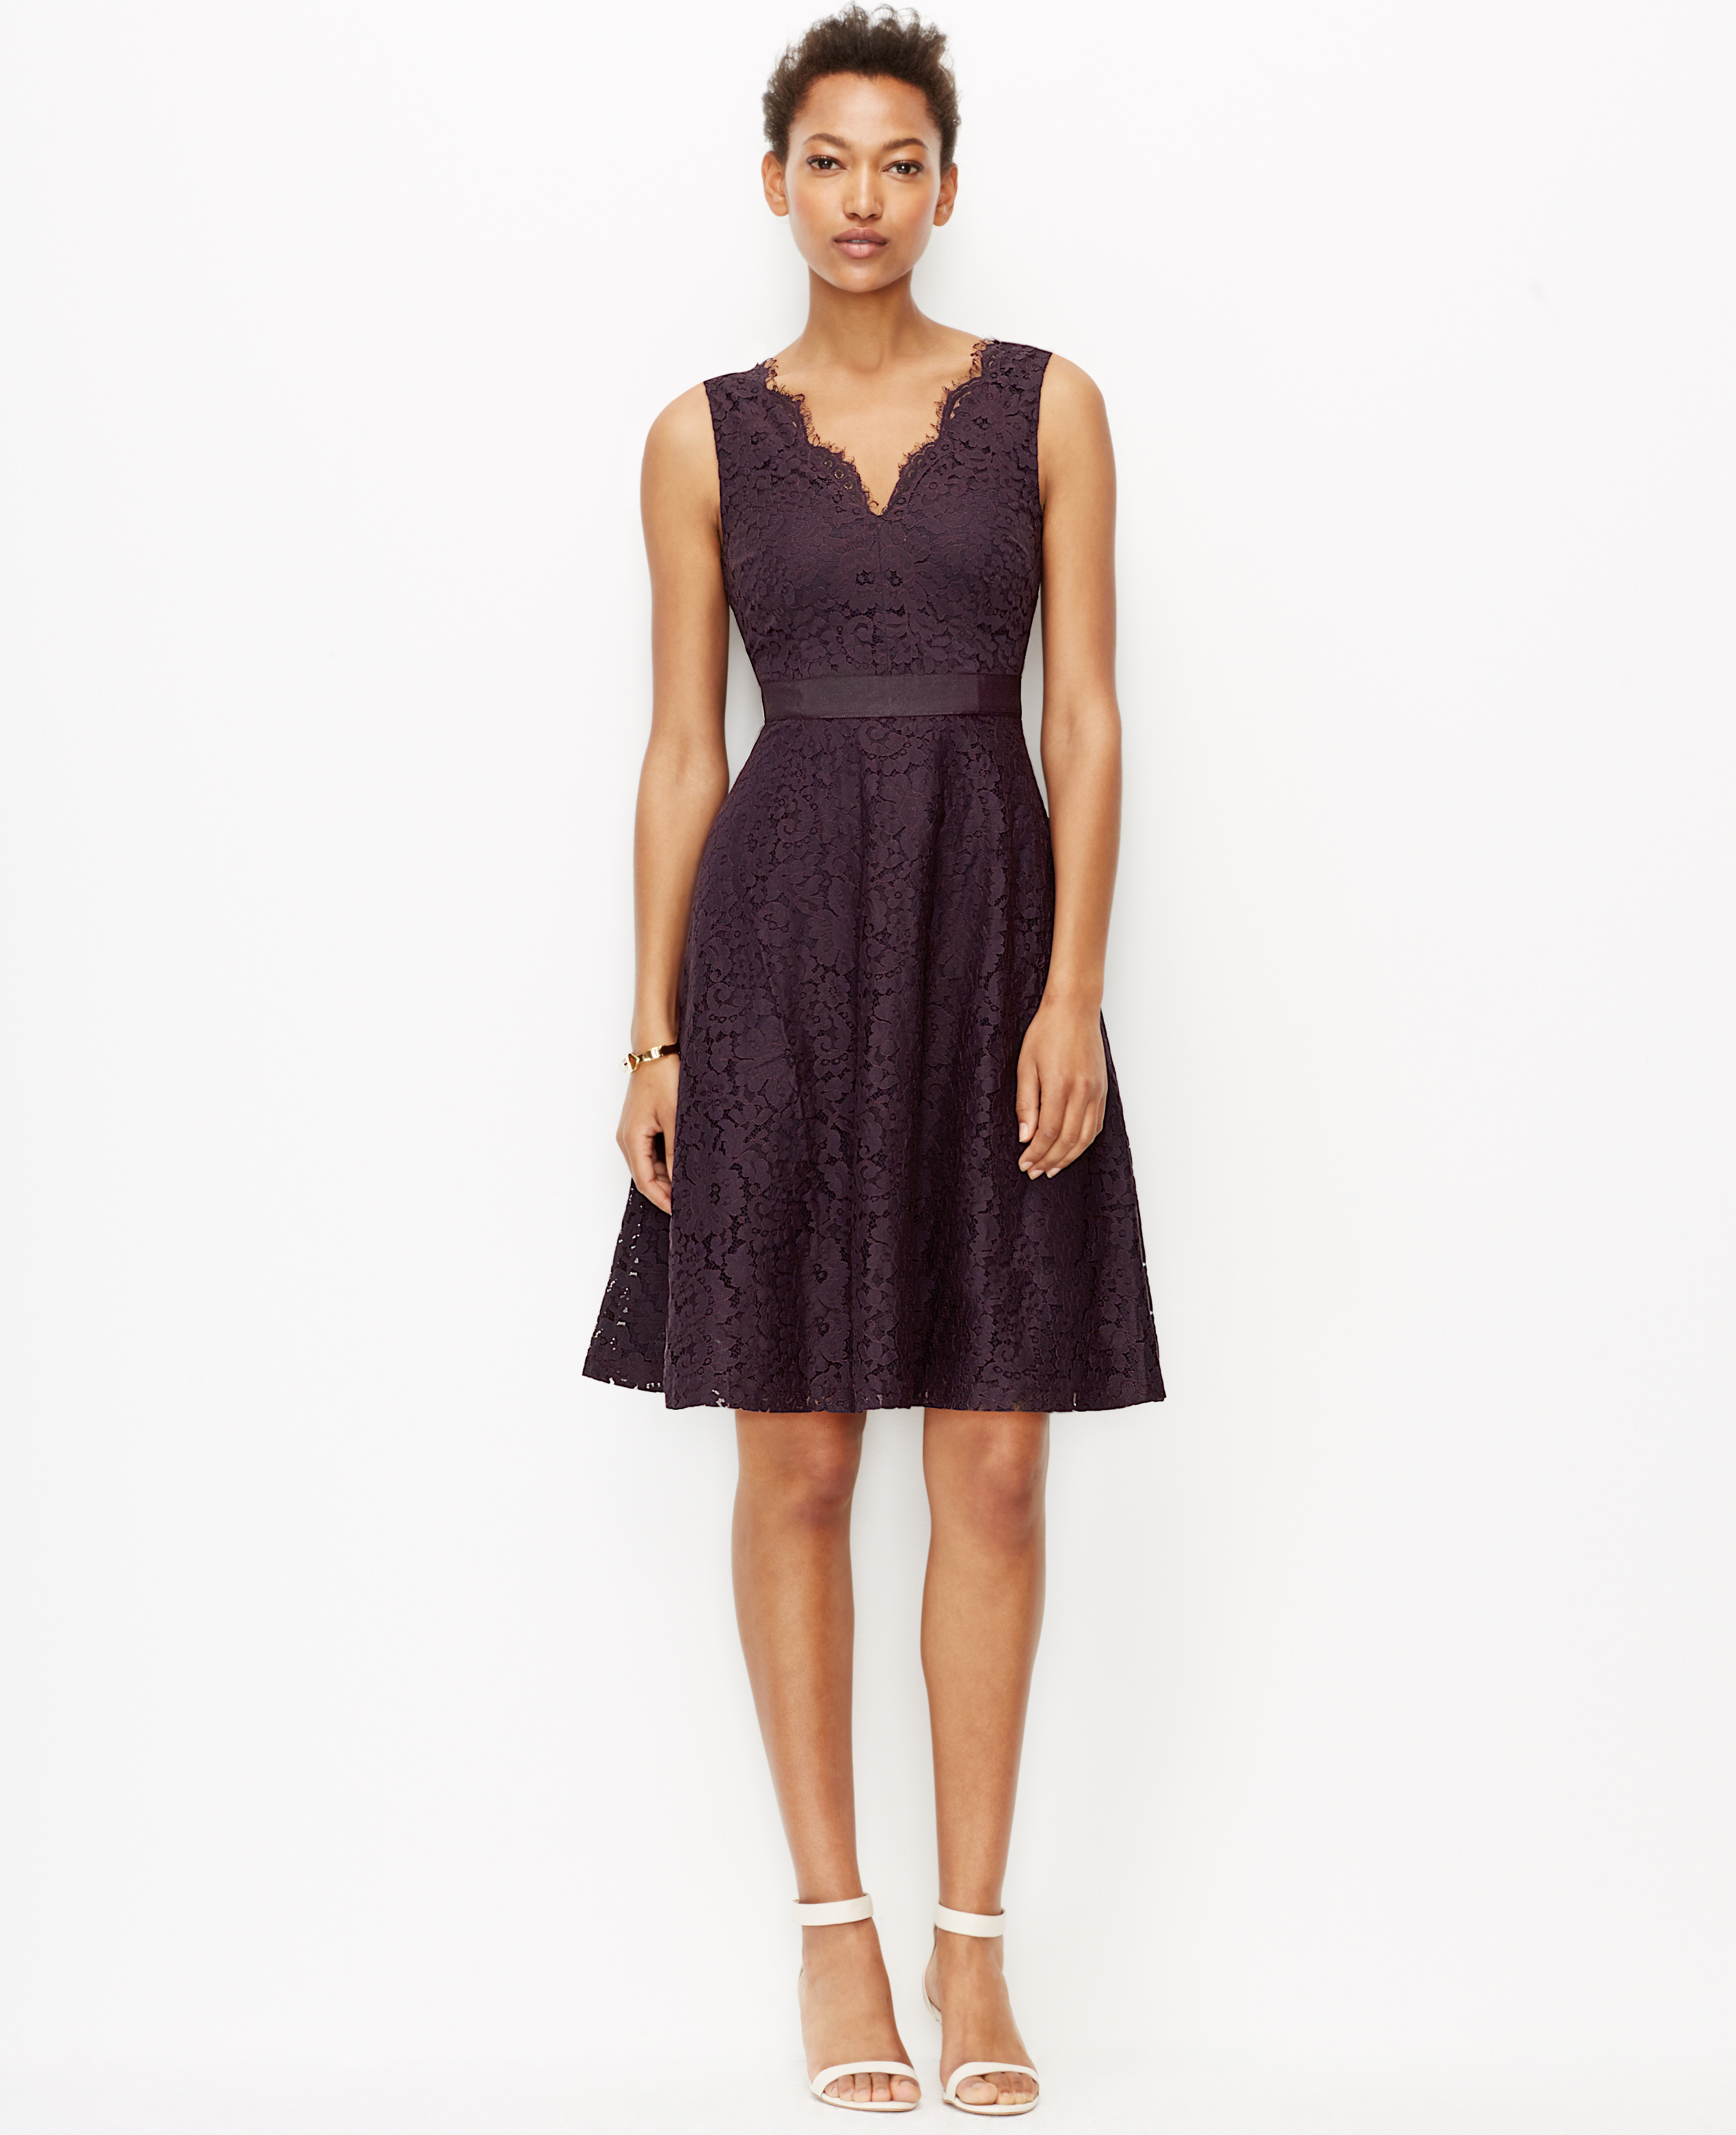 Fashion girls dress - Ann taylor cocktail dress